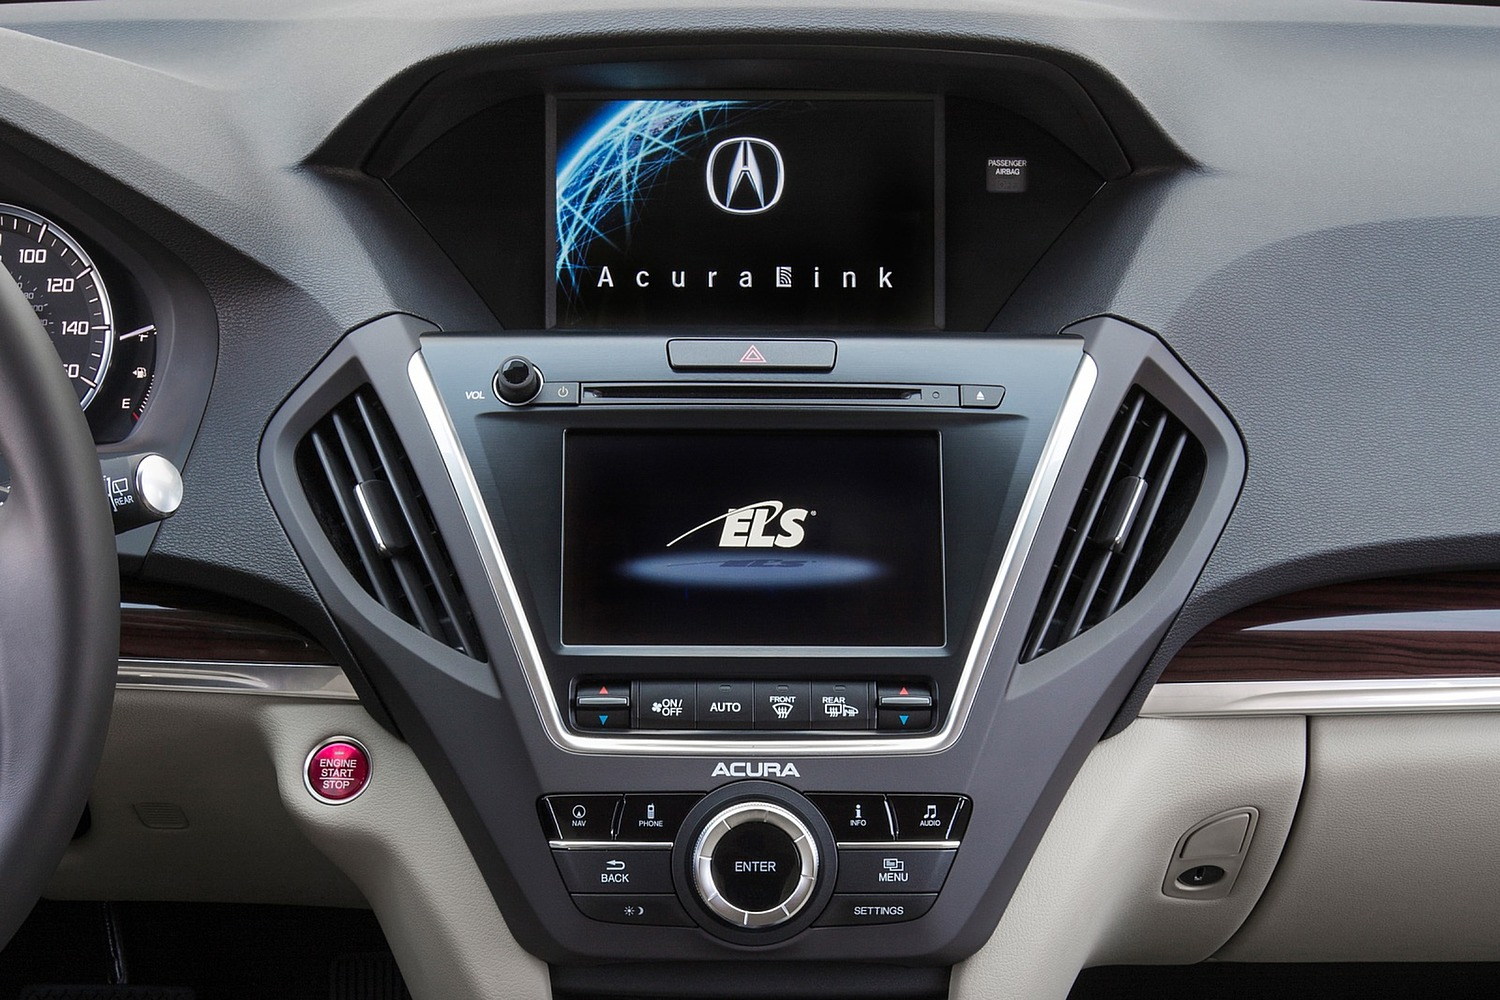 2016 Acura MDX Technology, Entertainment and AcuraWatch Plus Packages 4dr SUV Center Console